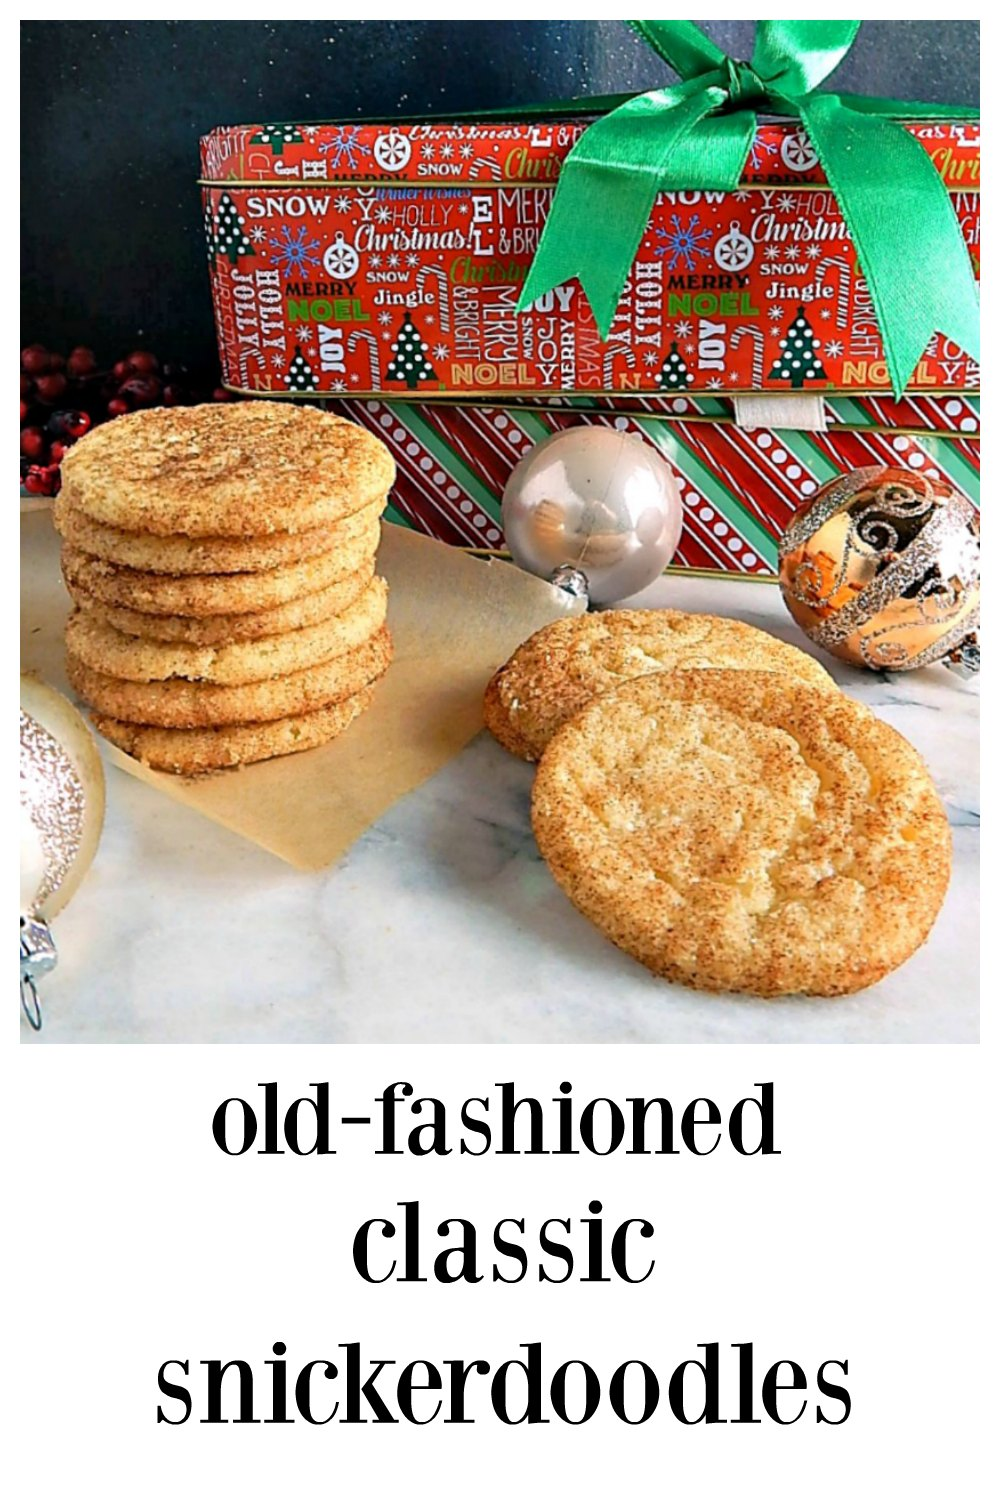 These are the old-fashioned Classic Snickerdoodles; there may be bigger or fancier Snickerdoodles, but there's none better than the classic! #Snickerdoodles #OldFashionedSnickerdoodles #ClassicSnickerdoodles